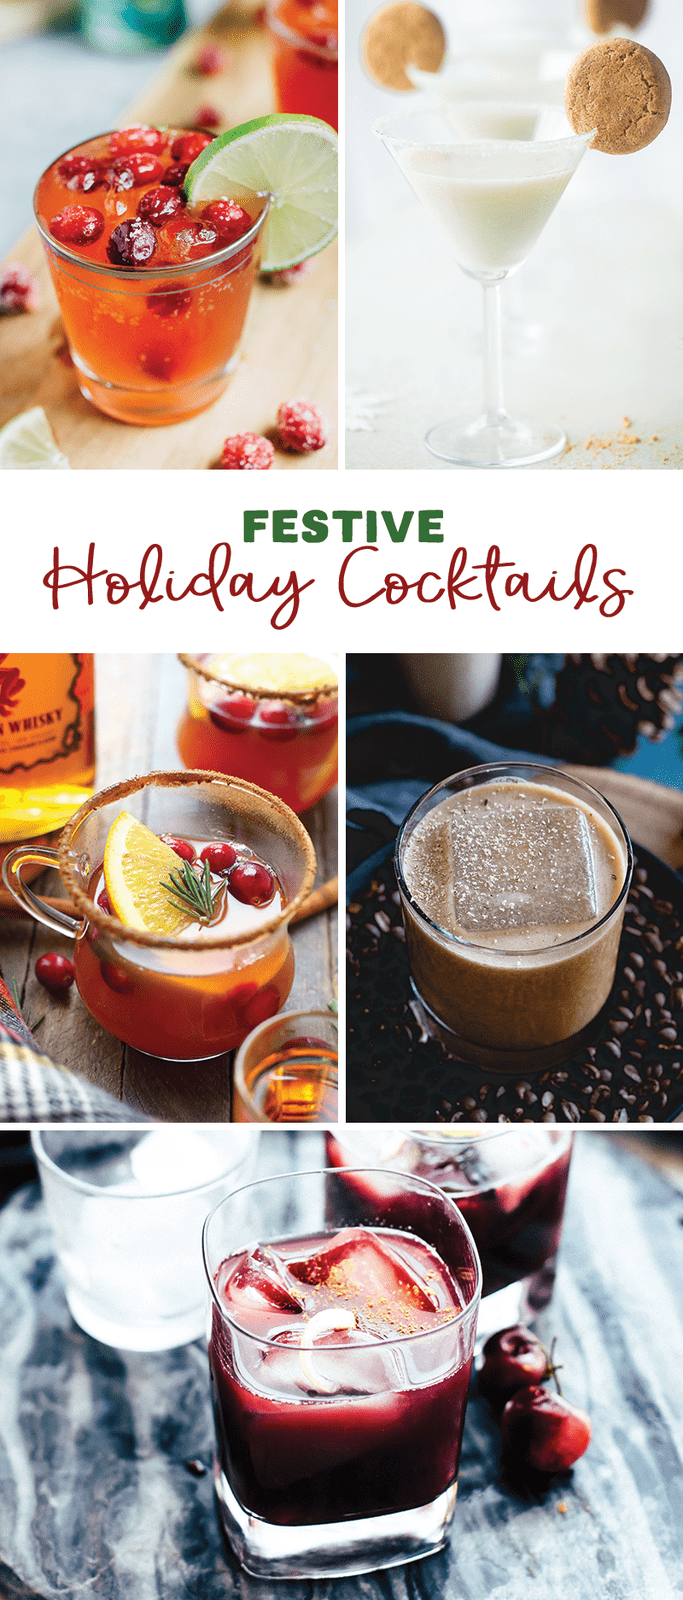 Delicious and Light Festive Holiday Cocktails